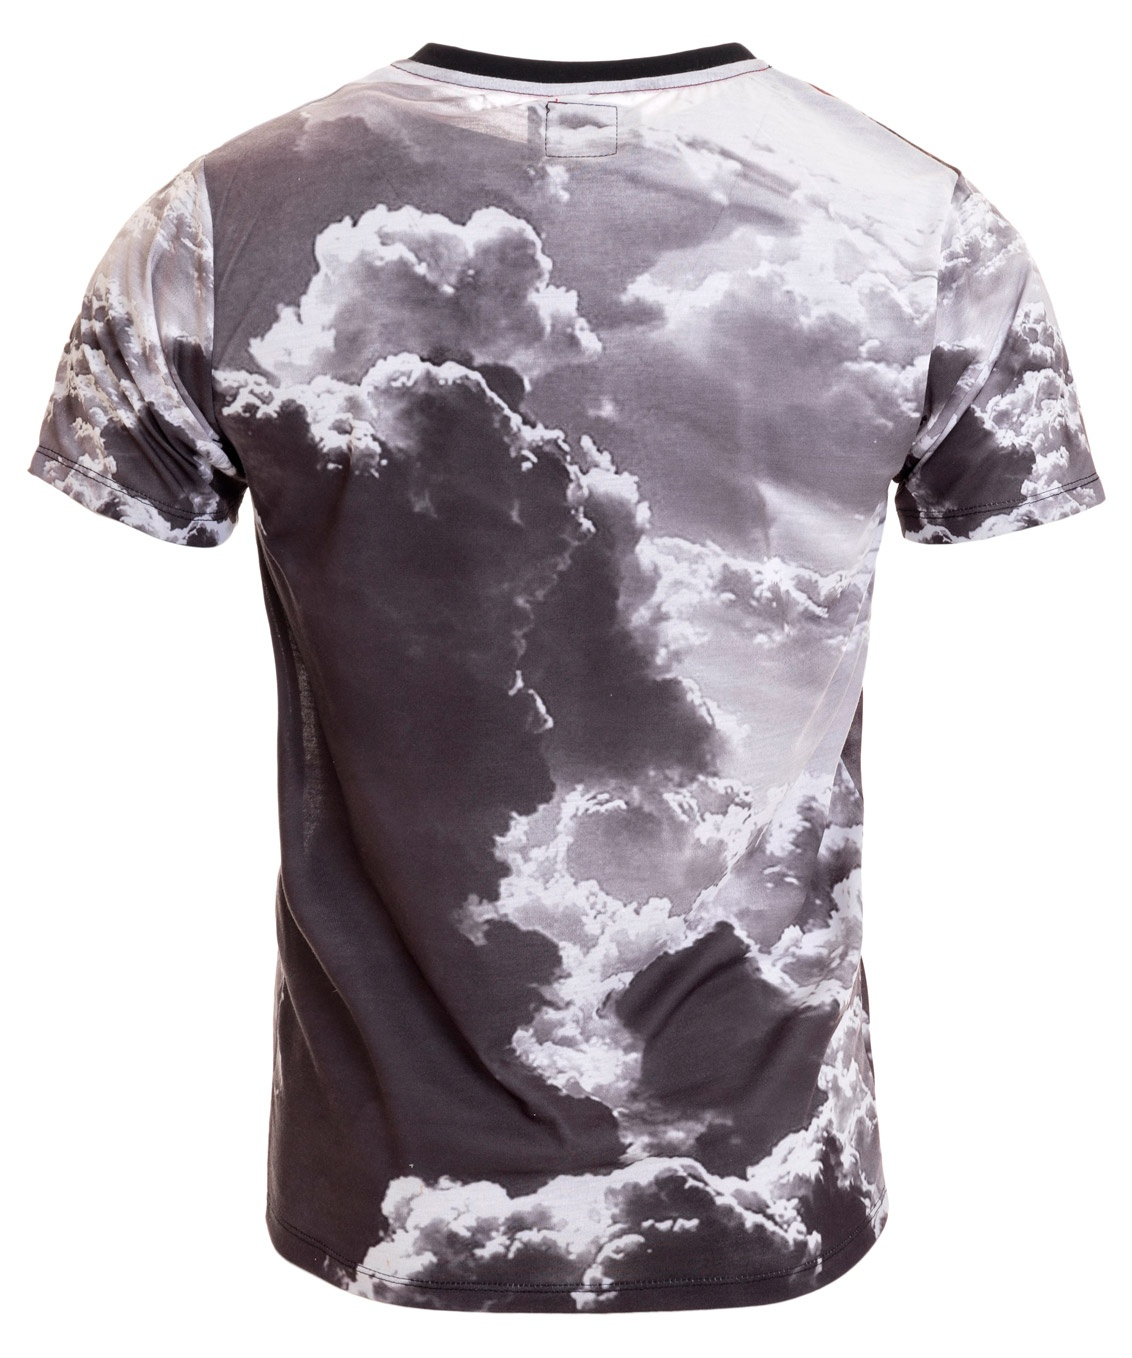 T-SHIRT SMK CLOUDS